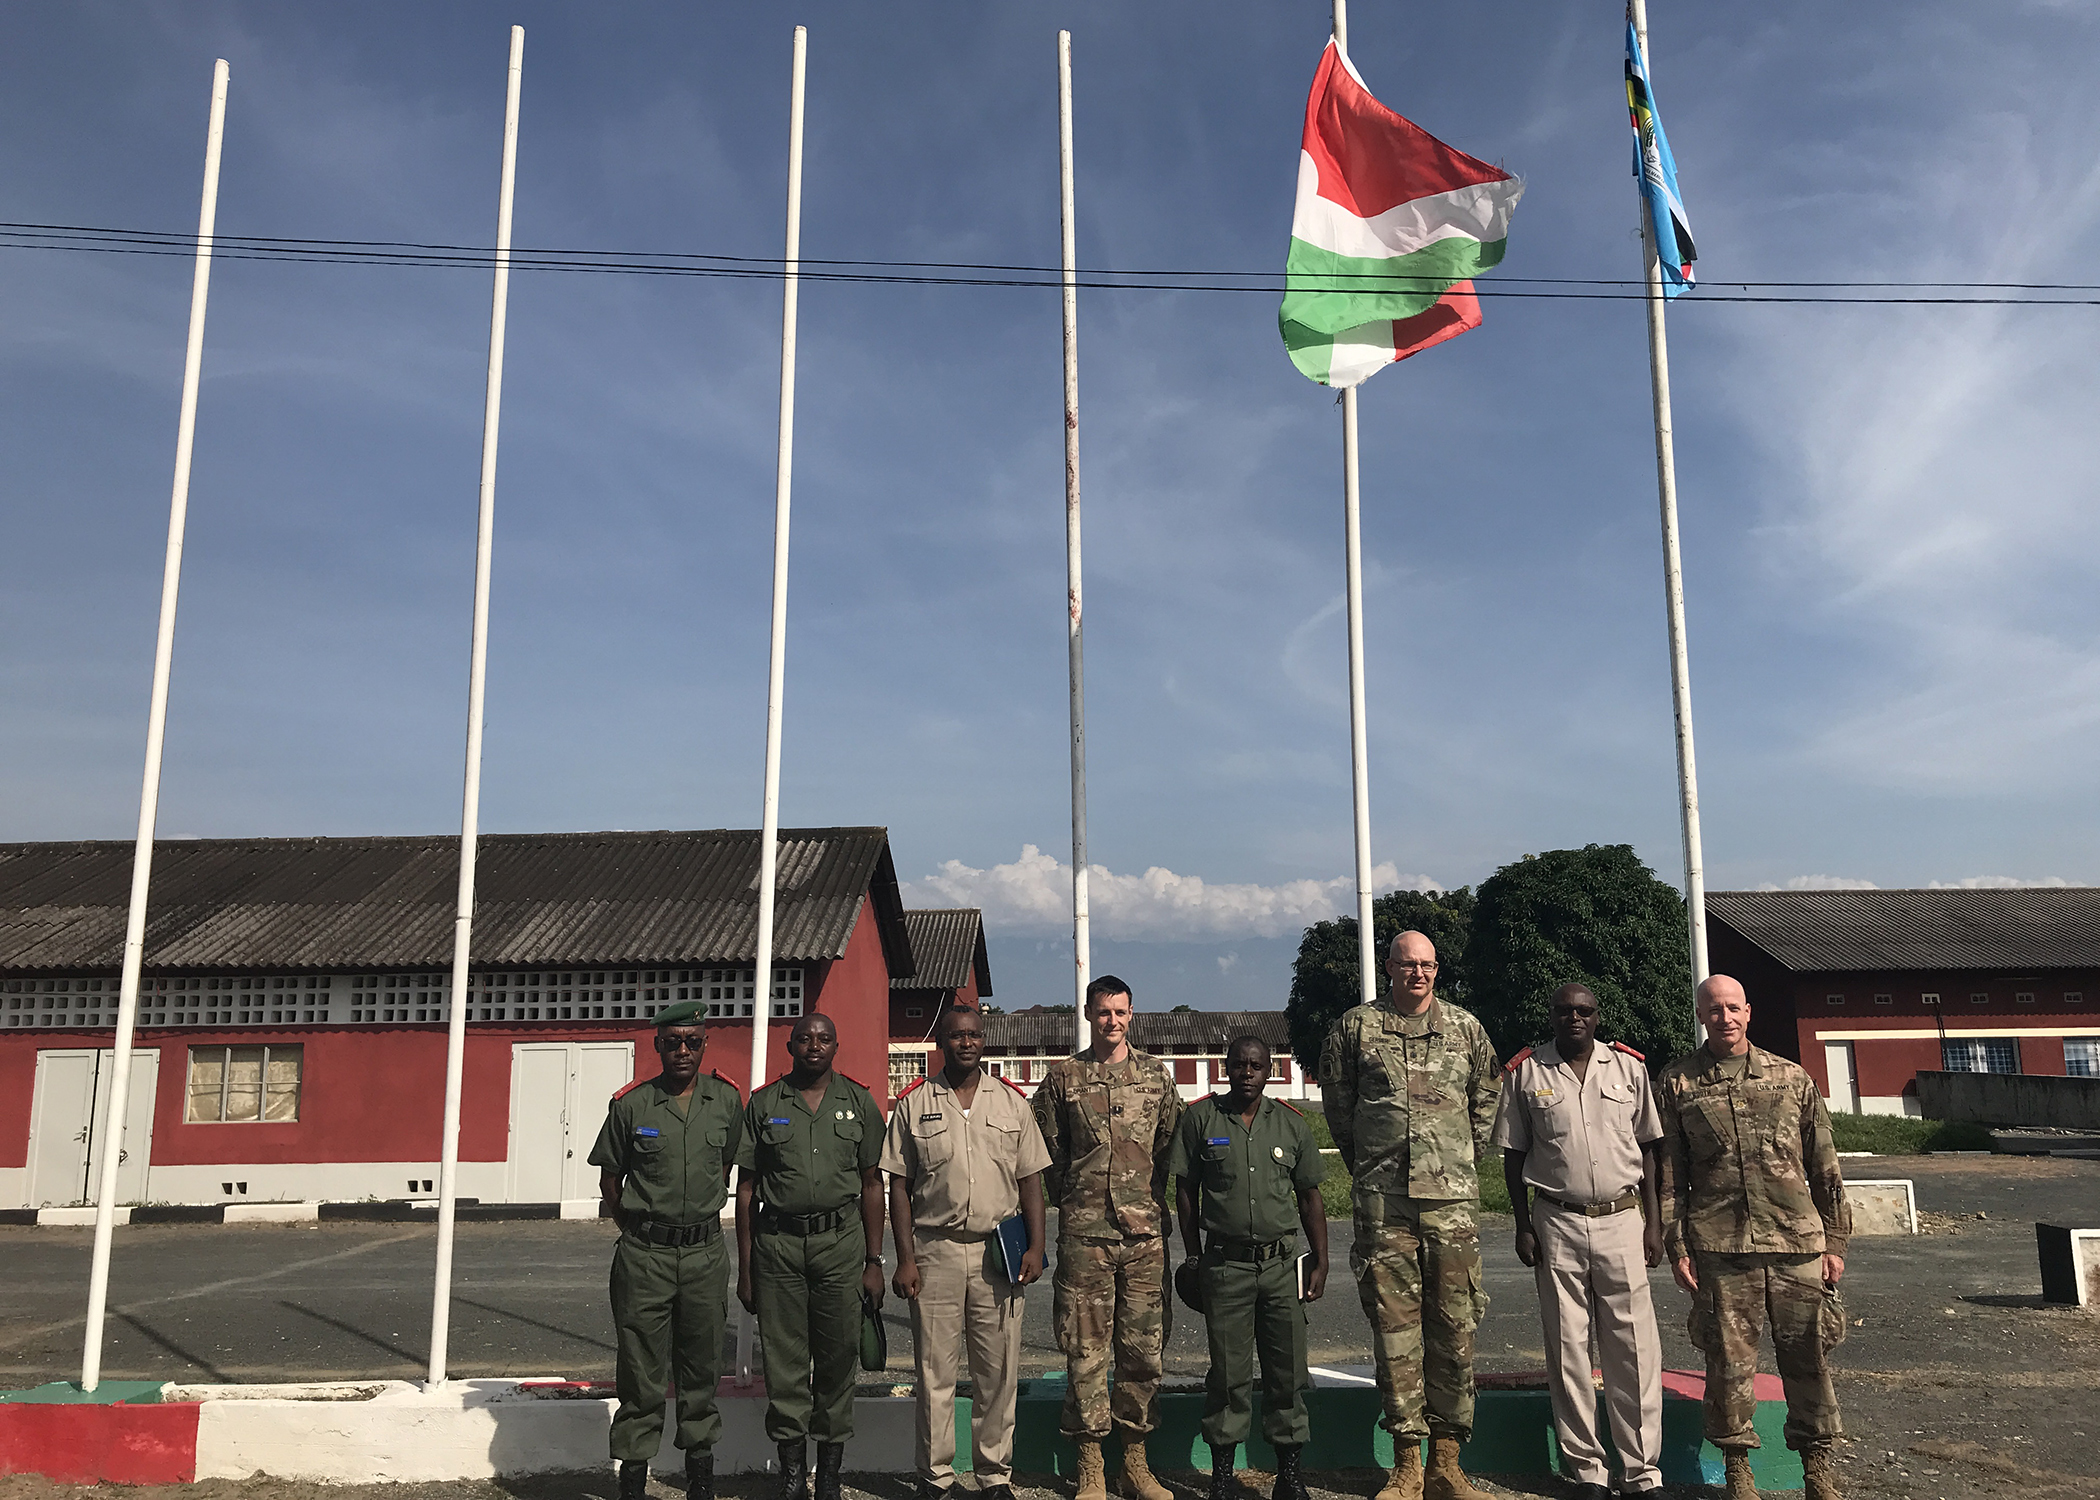 Combined Joint Task Force-Horn of Africa service members pose for a group photo at the Burundi National Defence Force Senior Command and Staff College (SCSC), in Kinanira, Burundi, May 17, 2019.  A team of CJTF-HOA service members visited Burundi to discuss best practices with the Burundi SCSC students. (Courtesy Photo)